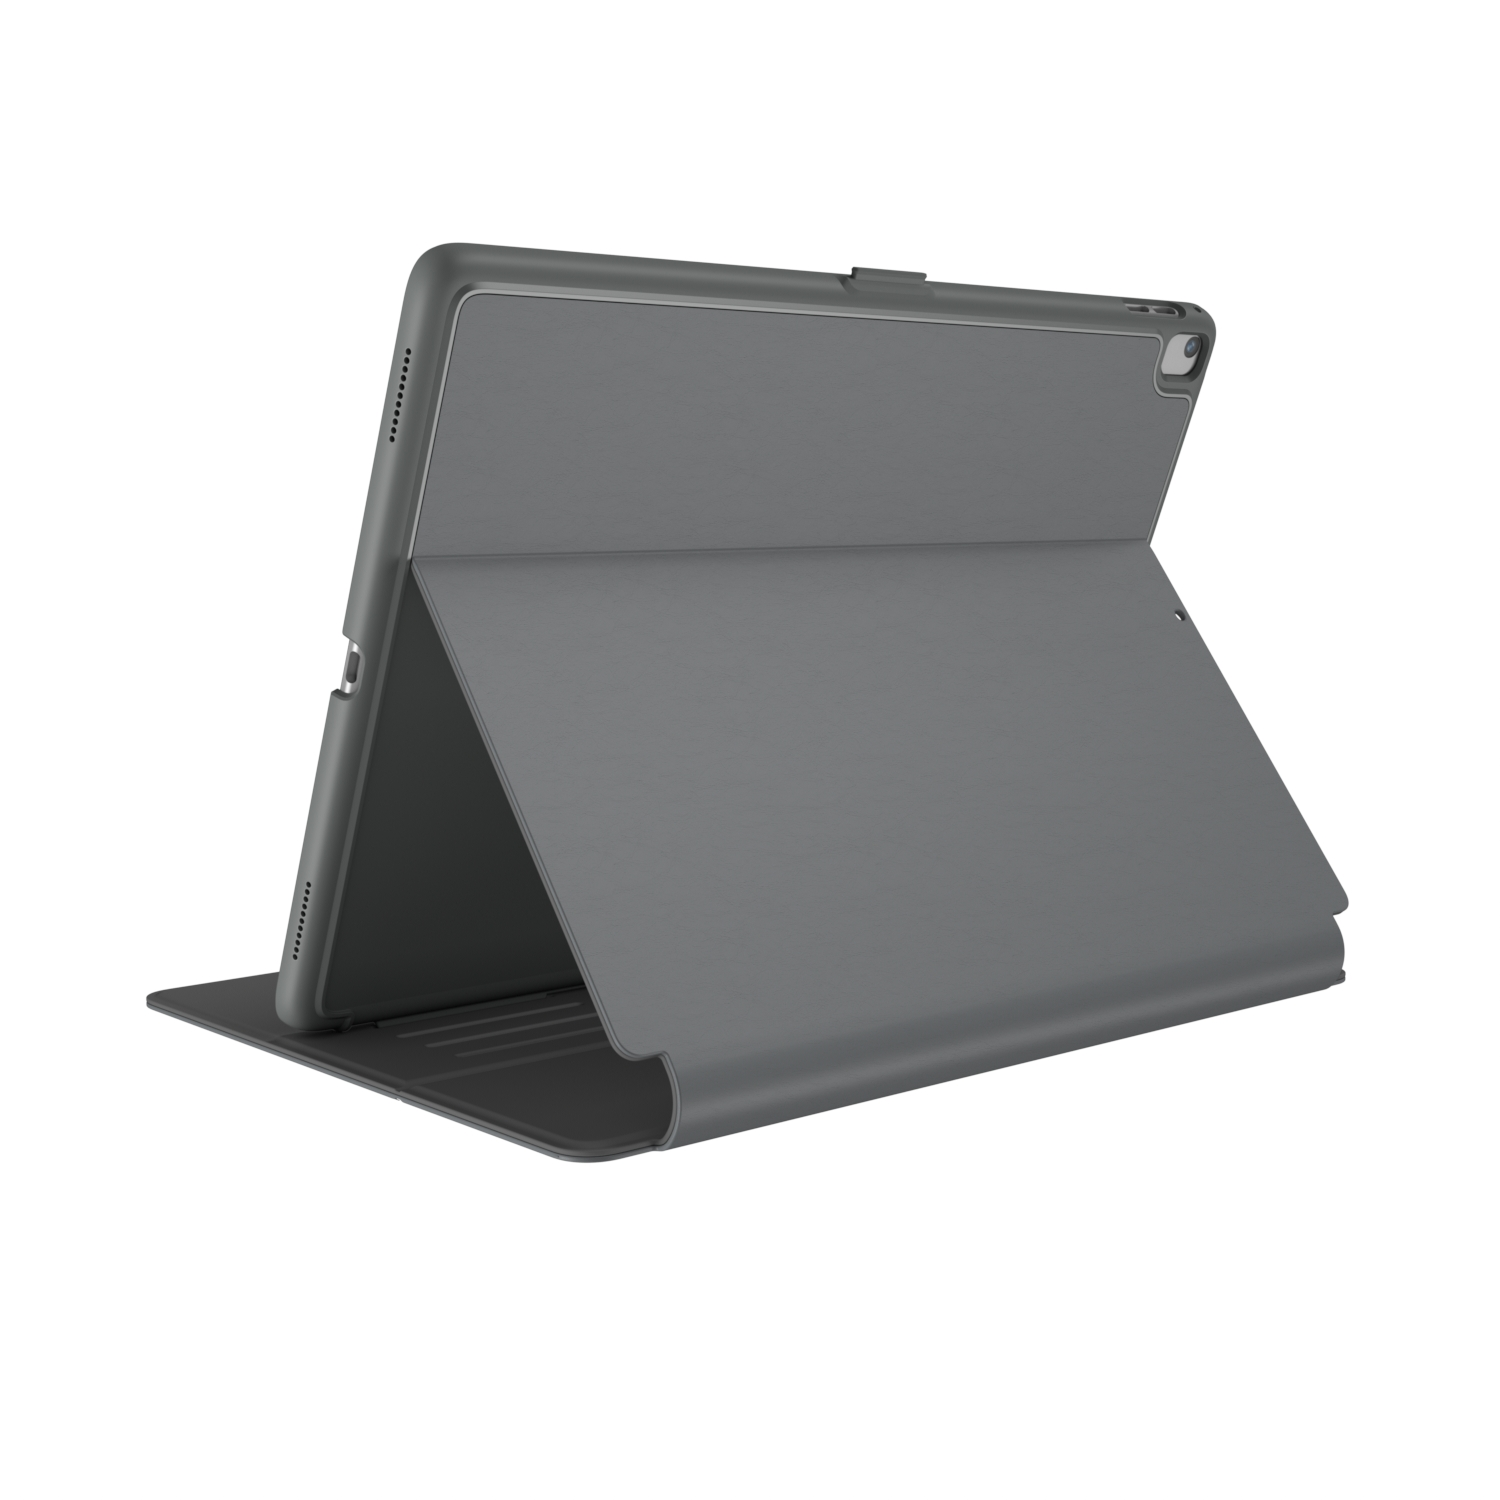 Compare retail prices of Speck Balance FOLIO 10.5 inch iPad Pro Cases Stormy Grey/Charcoal Grey to get the best deal online